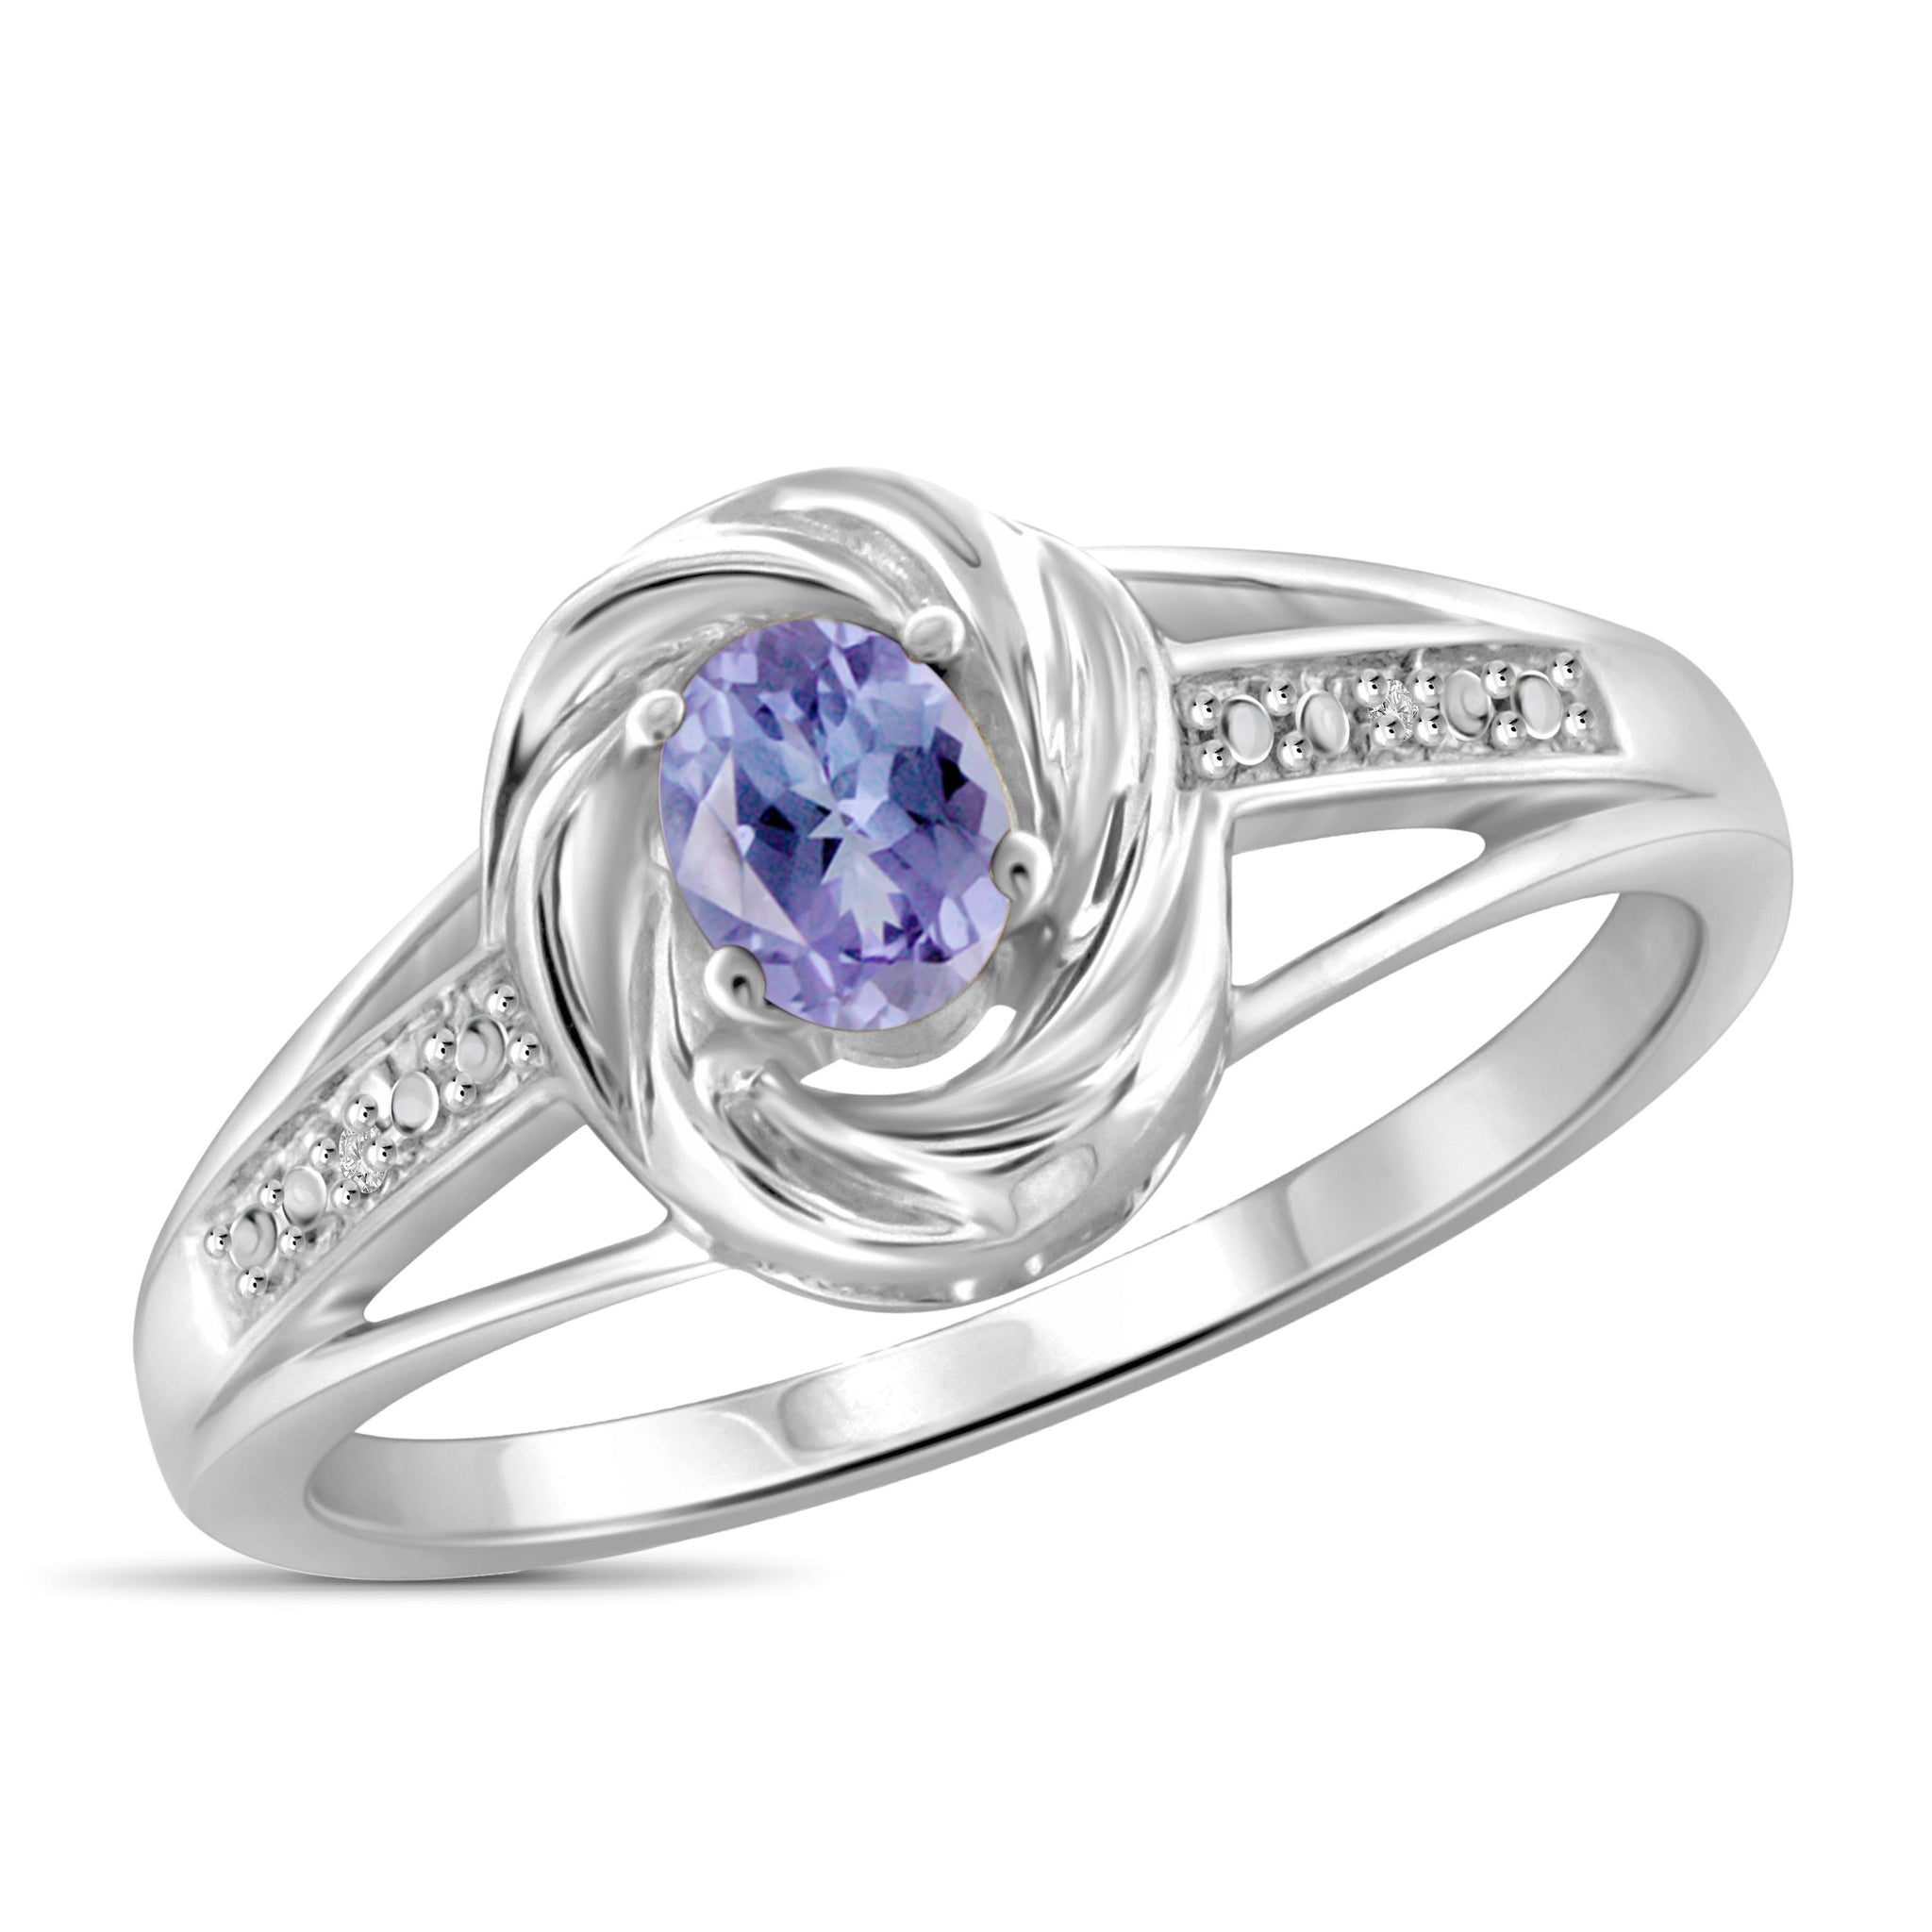 JewelonFire 0.20 Carat T.G.W. Tanzanite and White Diamond Accent Sterling Silver Ring - Assorted Colors